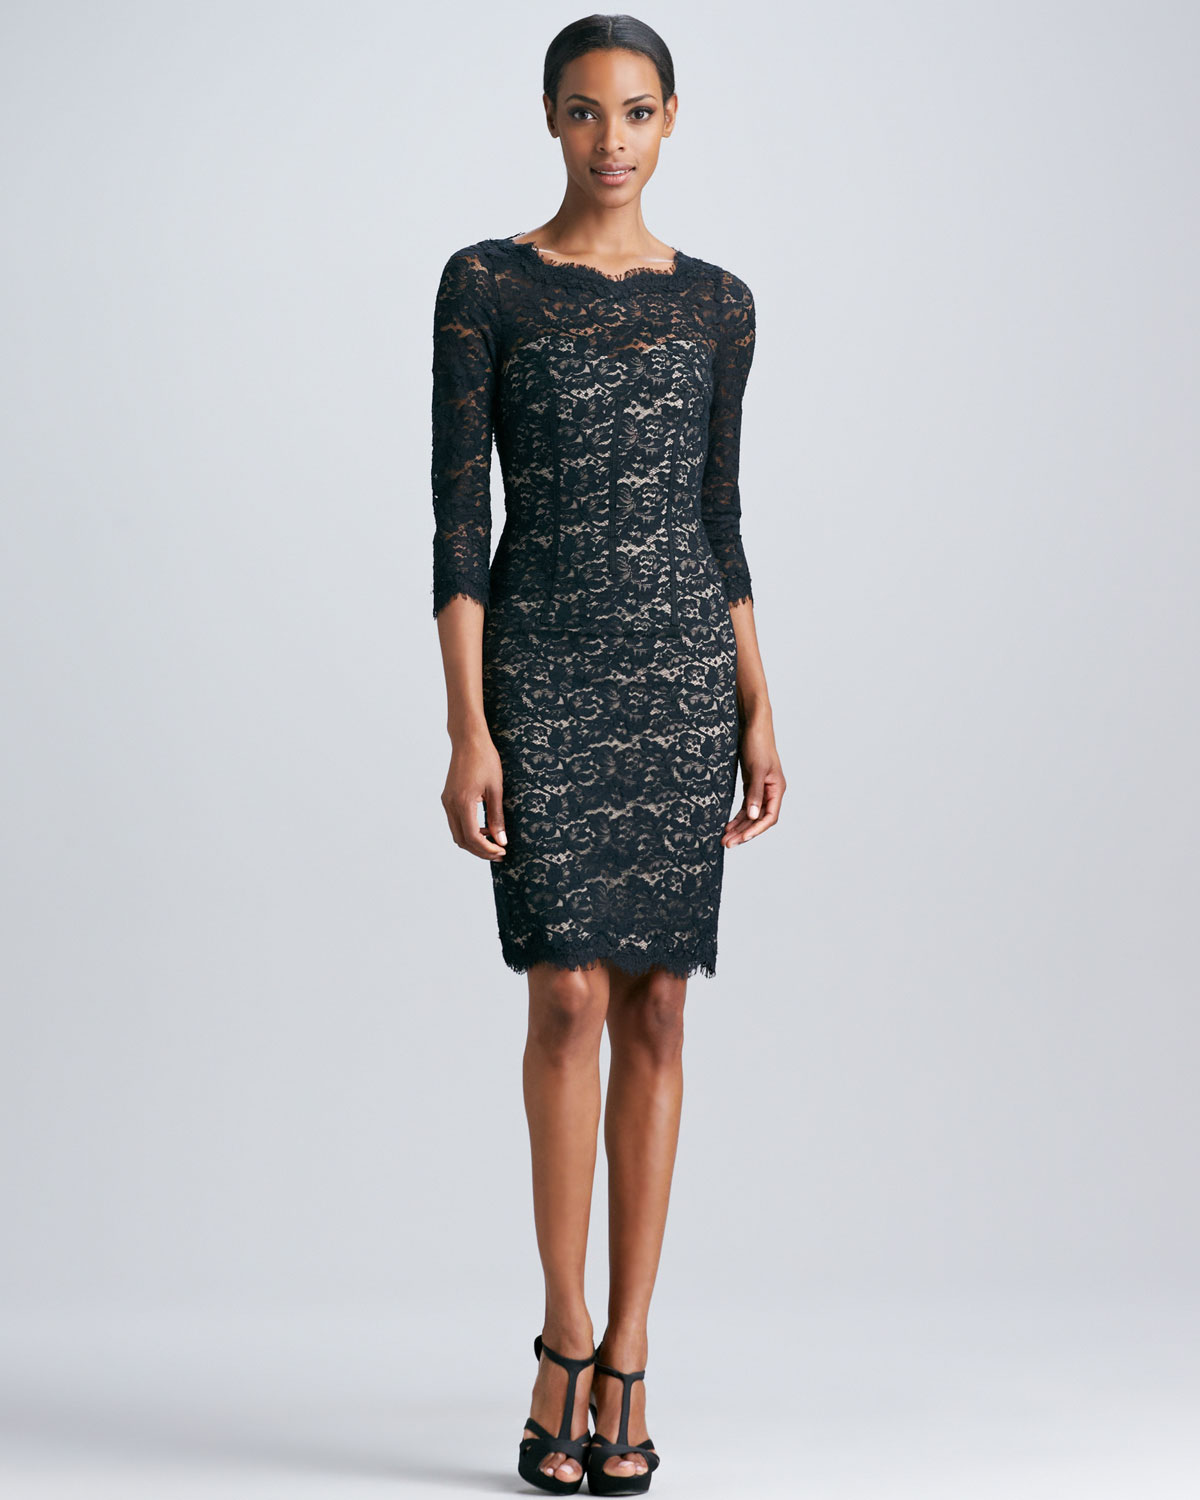 Lyst - Ml monique lhuillier Lace Cocktail Dress with Open Back in ...